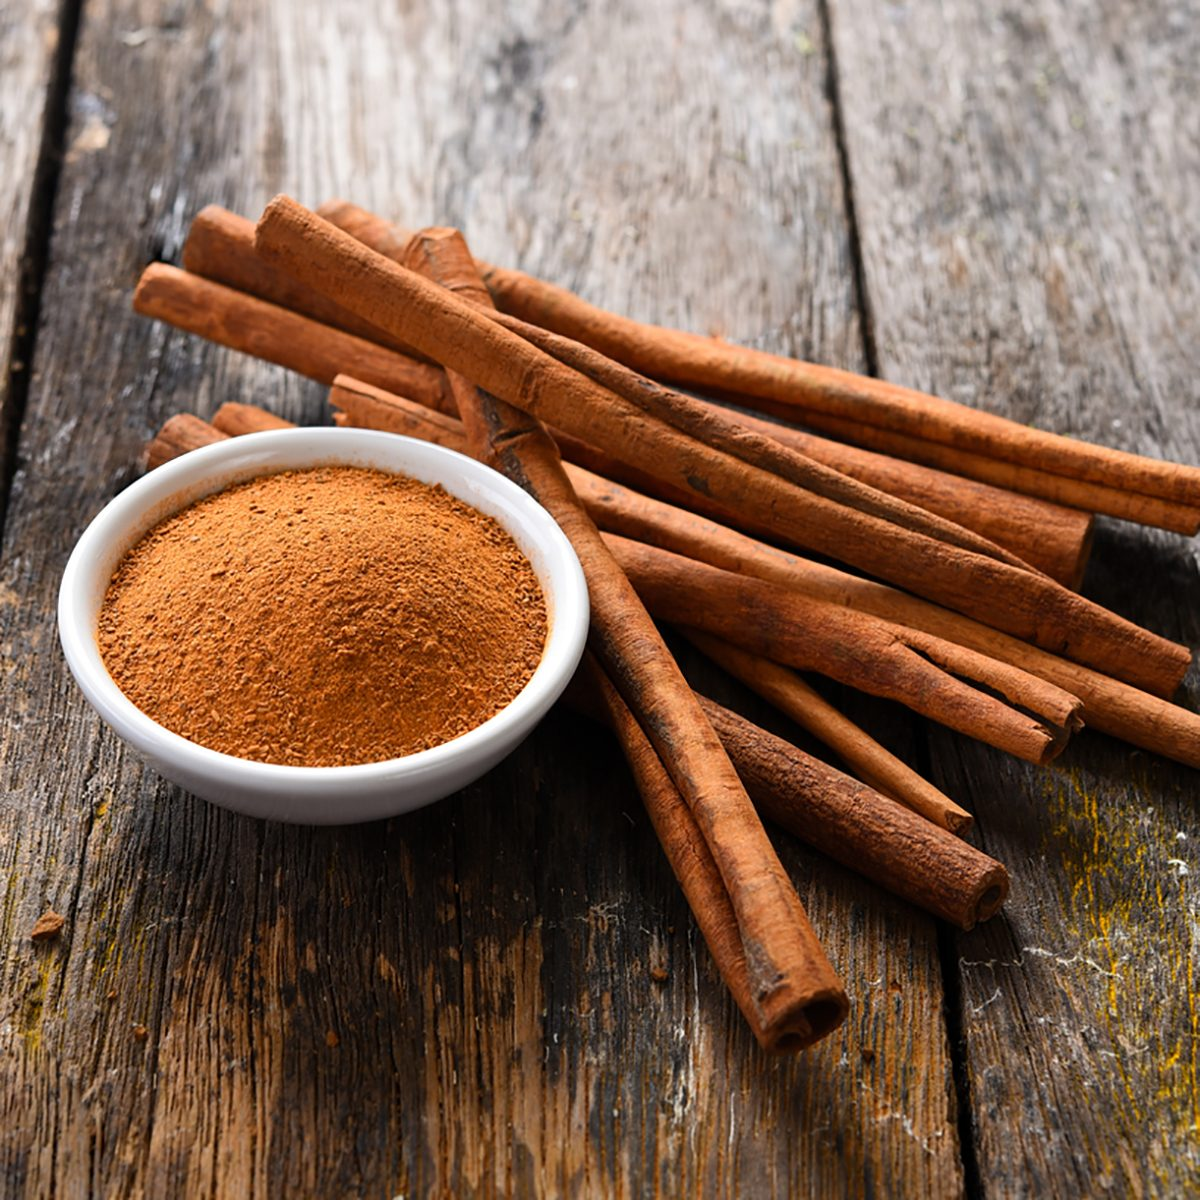 Cinnamon sticks and cinnamon powder on wood; Shutterstock ID 646377511